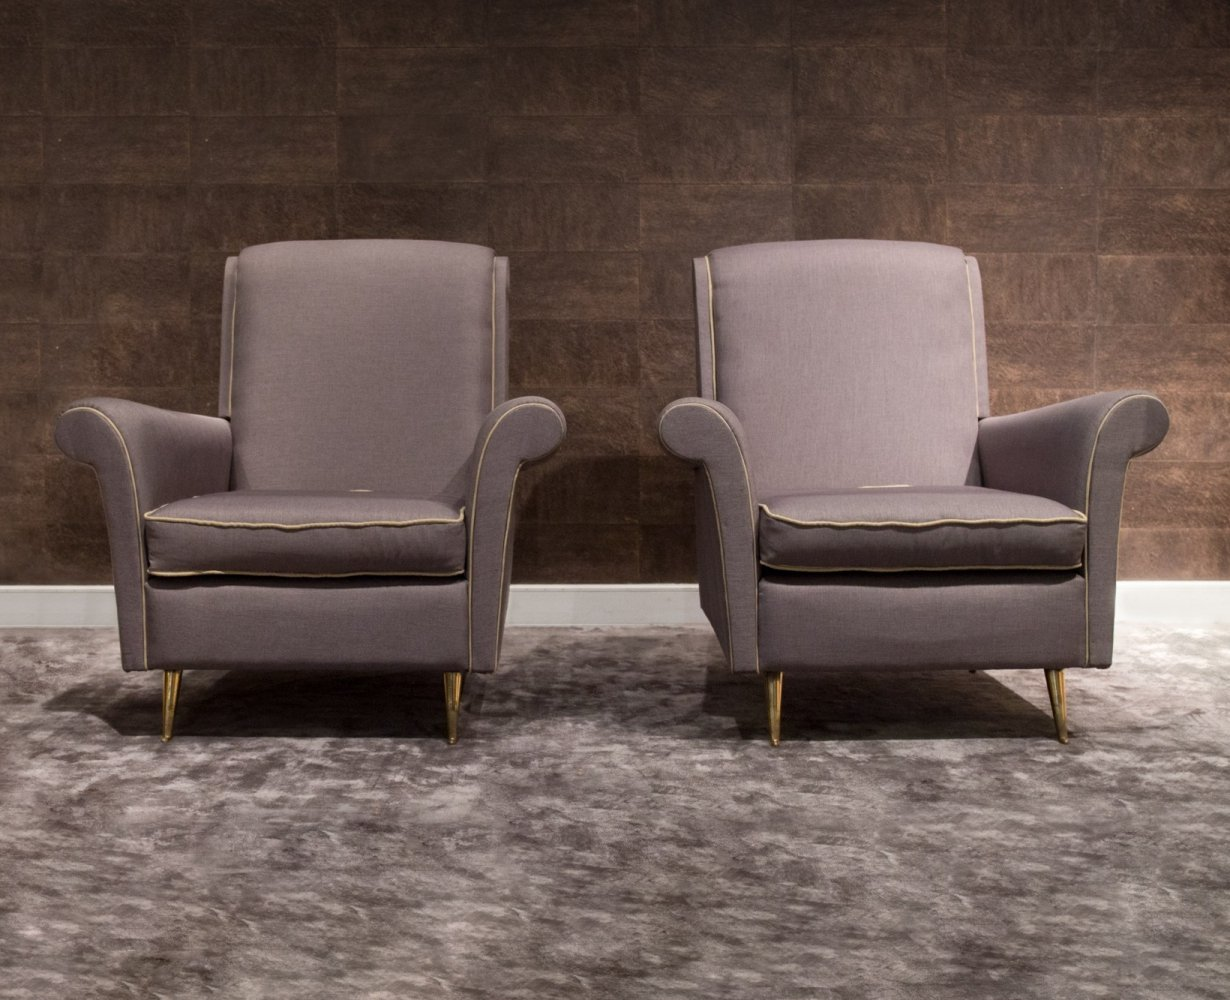 Pair of Italian Armchairs by Luisa & Ico Parisi for I.S.A. Bergamo, 1950s